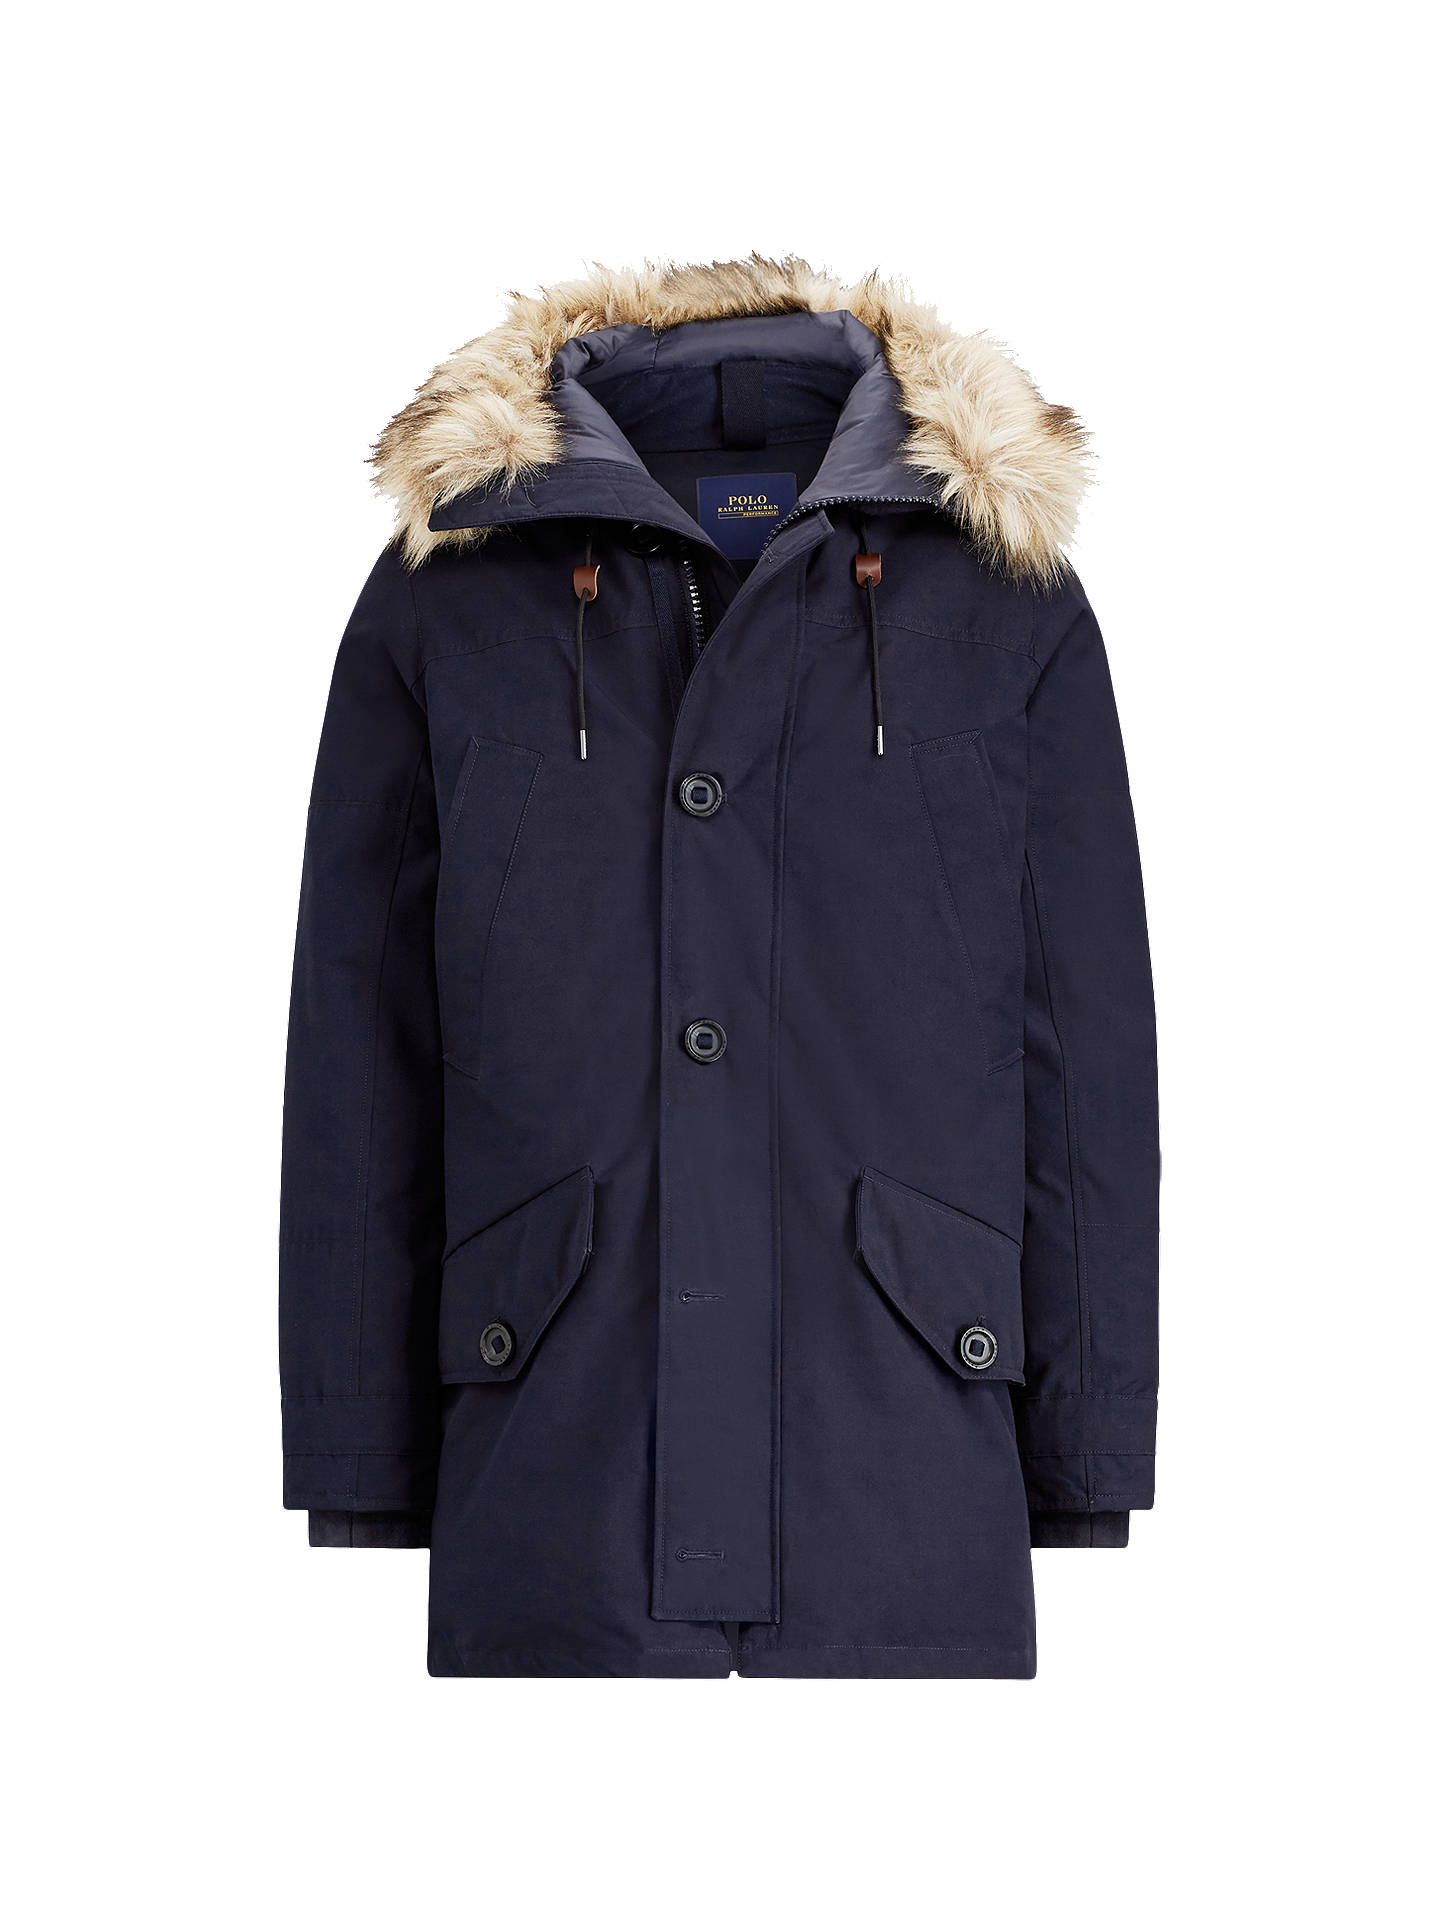 1d537d091 Polo Ralph Lauren Down Parka Jacket, Aviator Navy at John Lewis ...